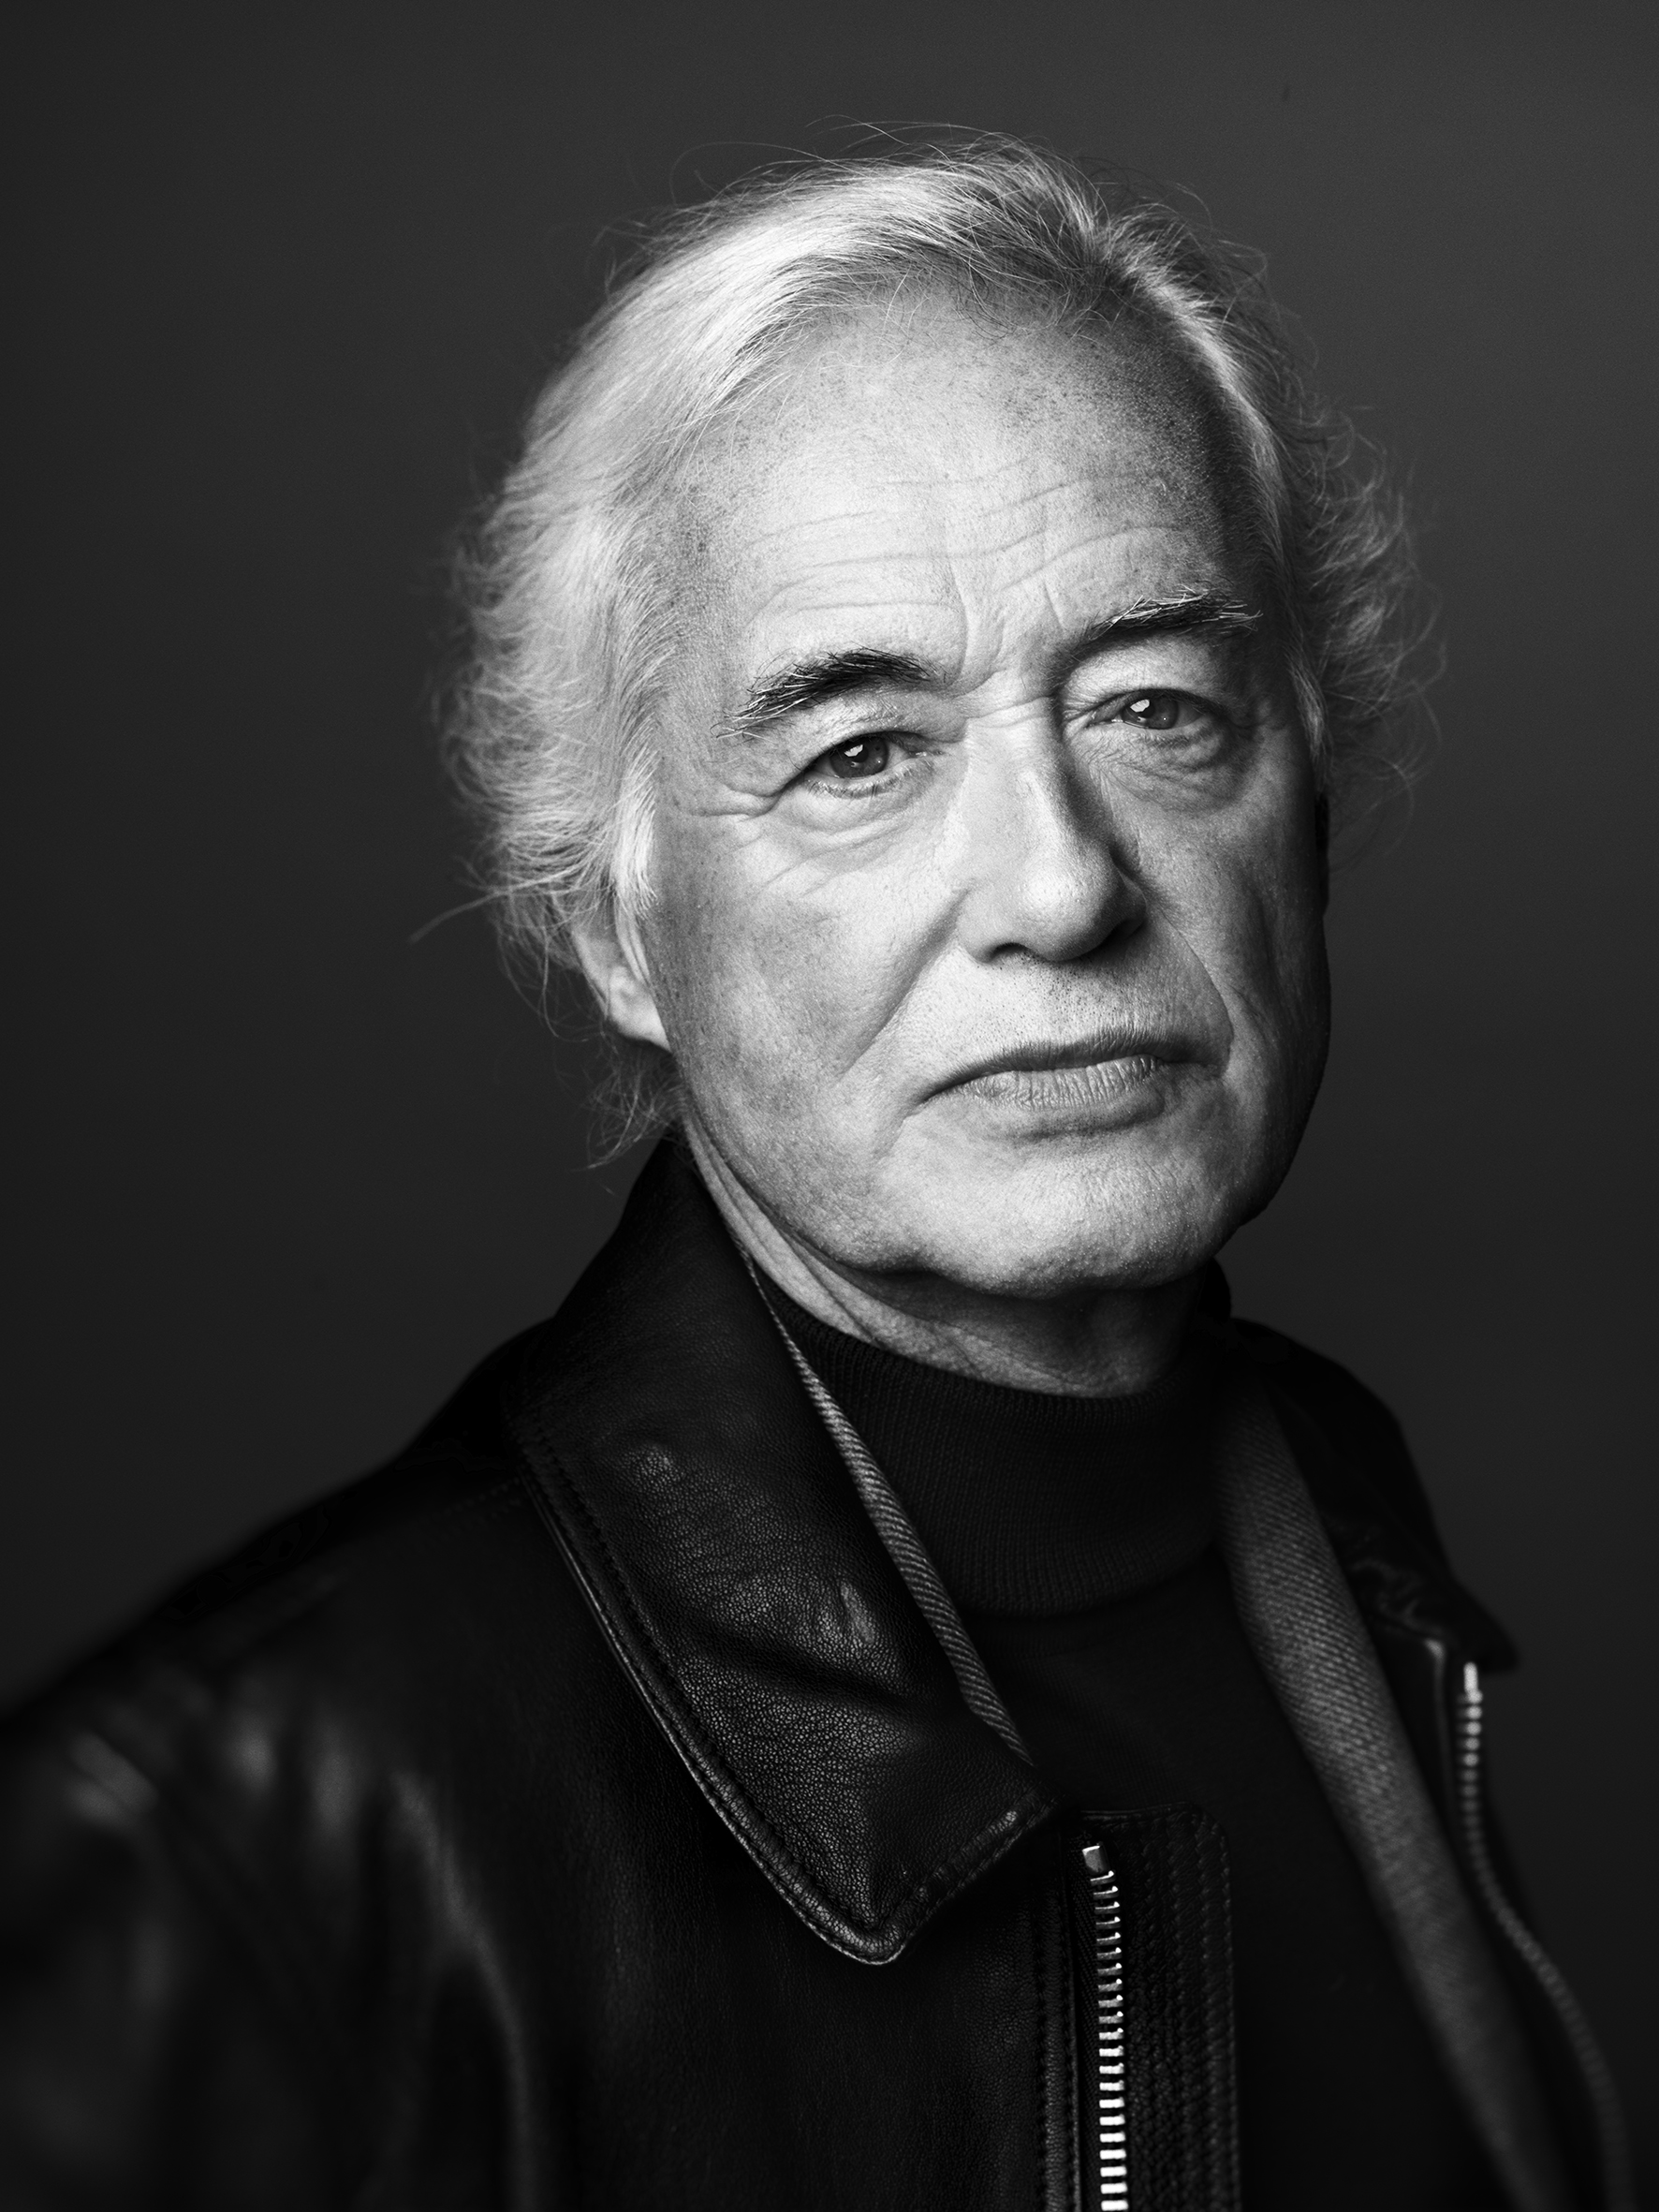 Mr. JIMMY PAGE photographed in London for GQ US